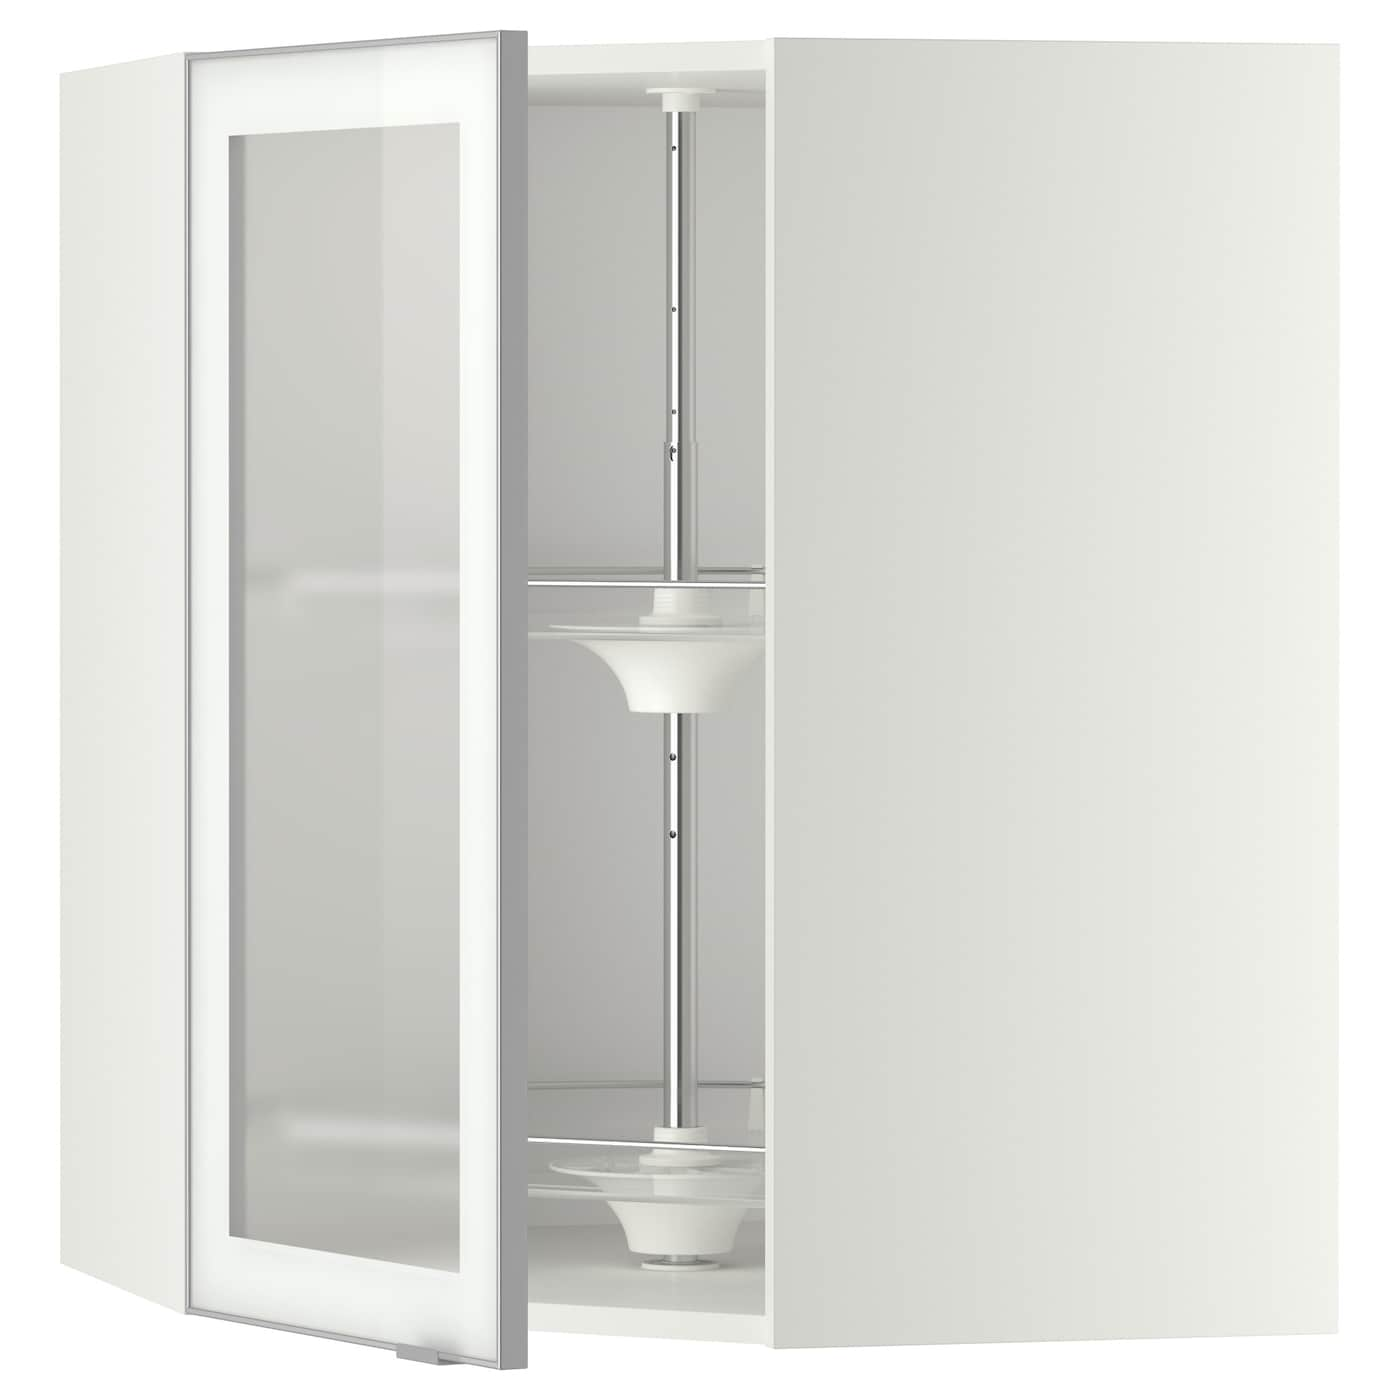 Corner Wall Cab W Carousel Glass Dr Metod White Jutis Frosted Glass